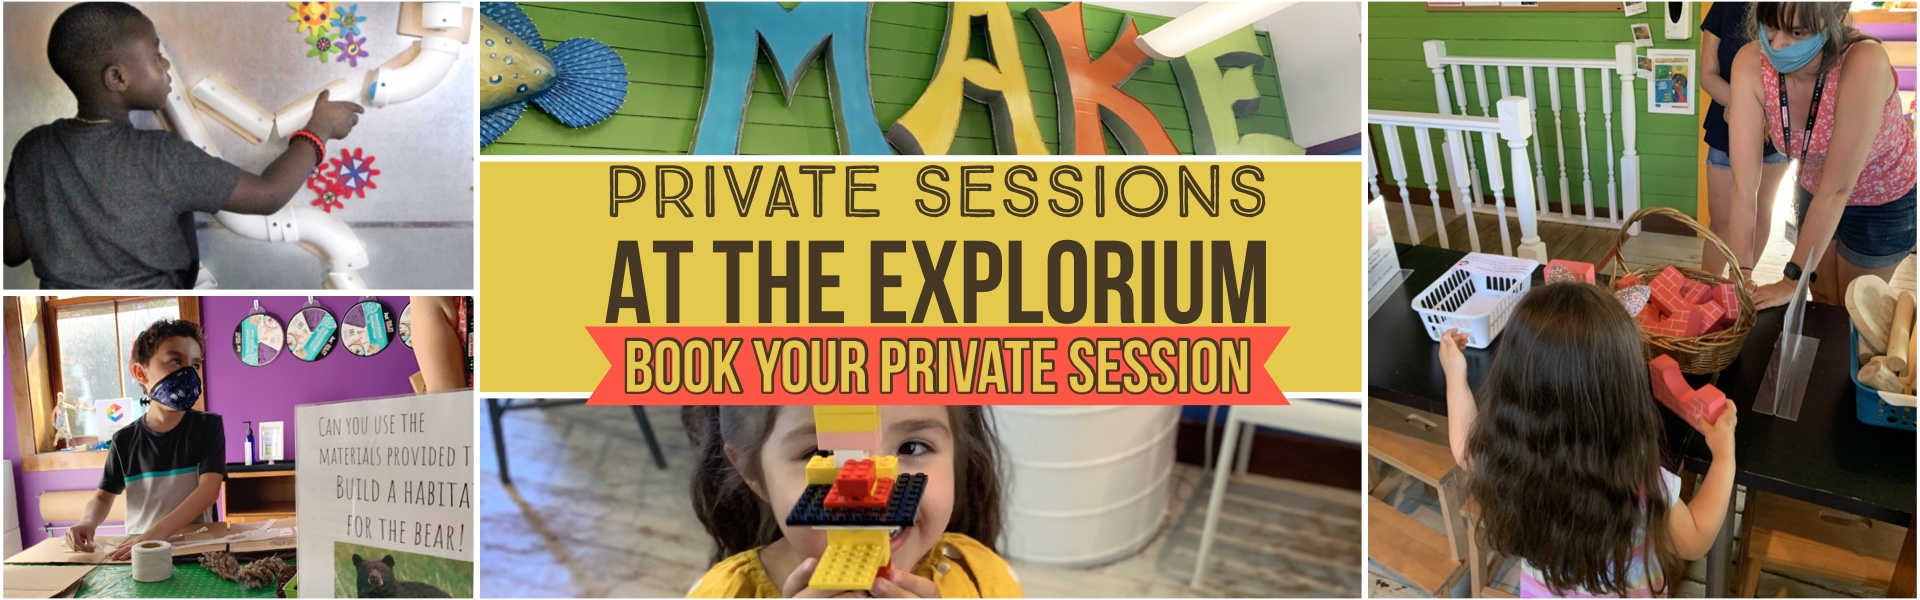 Private Play at the Long Island Explorium